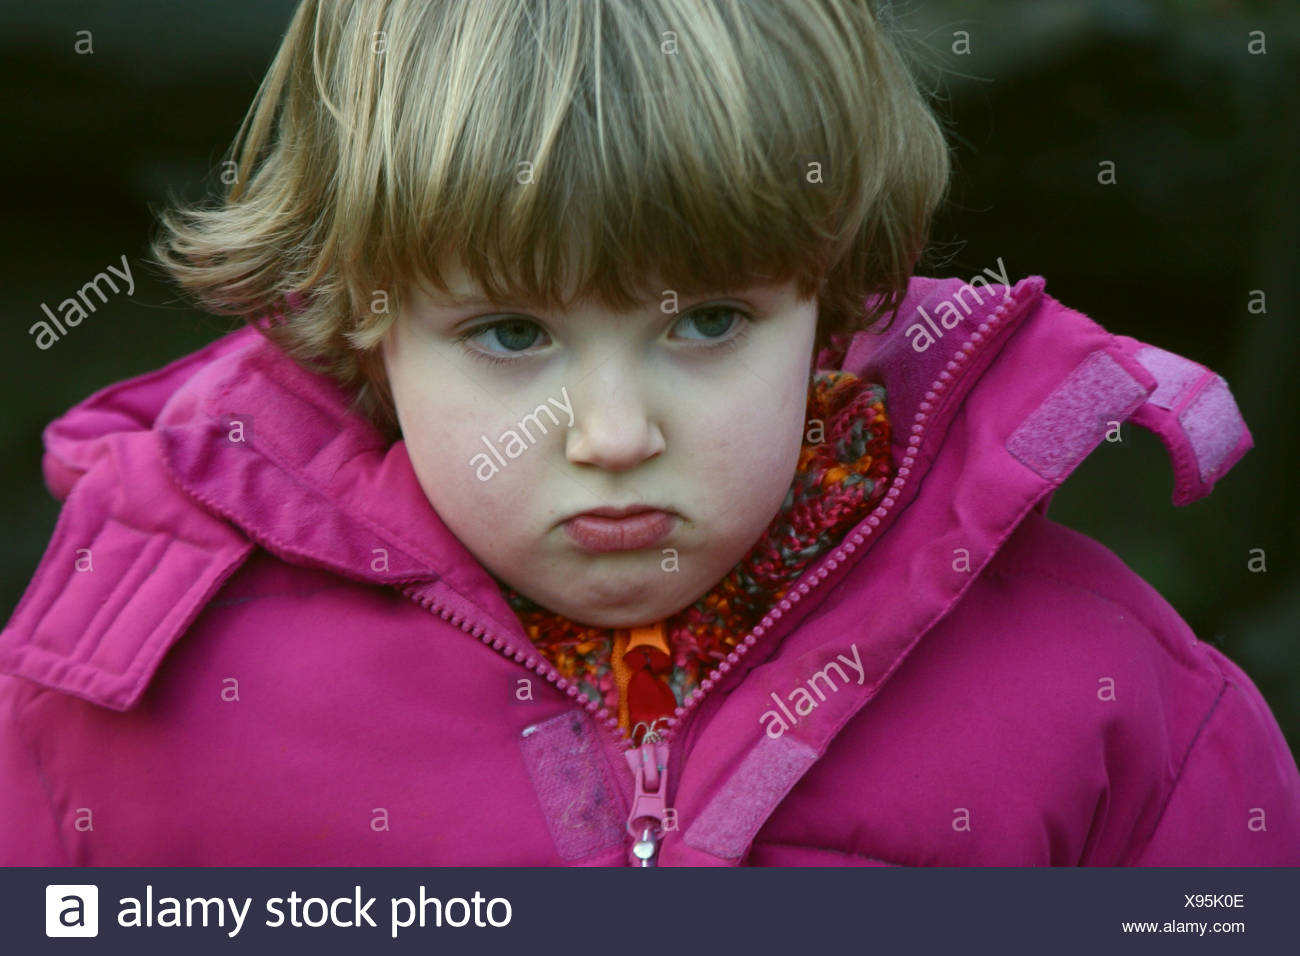 Pouty face from a pouting toddler girl outside in winter wear. - Stock Image